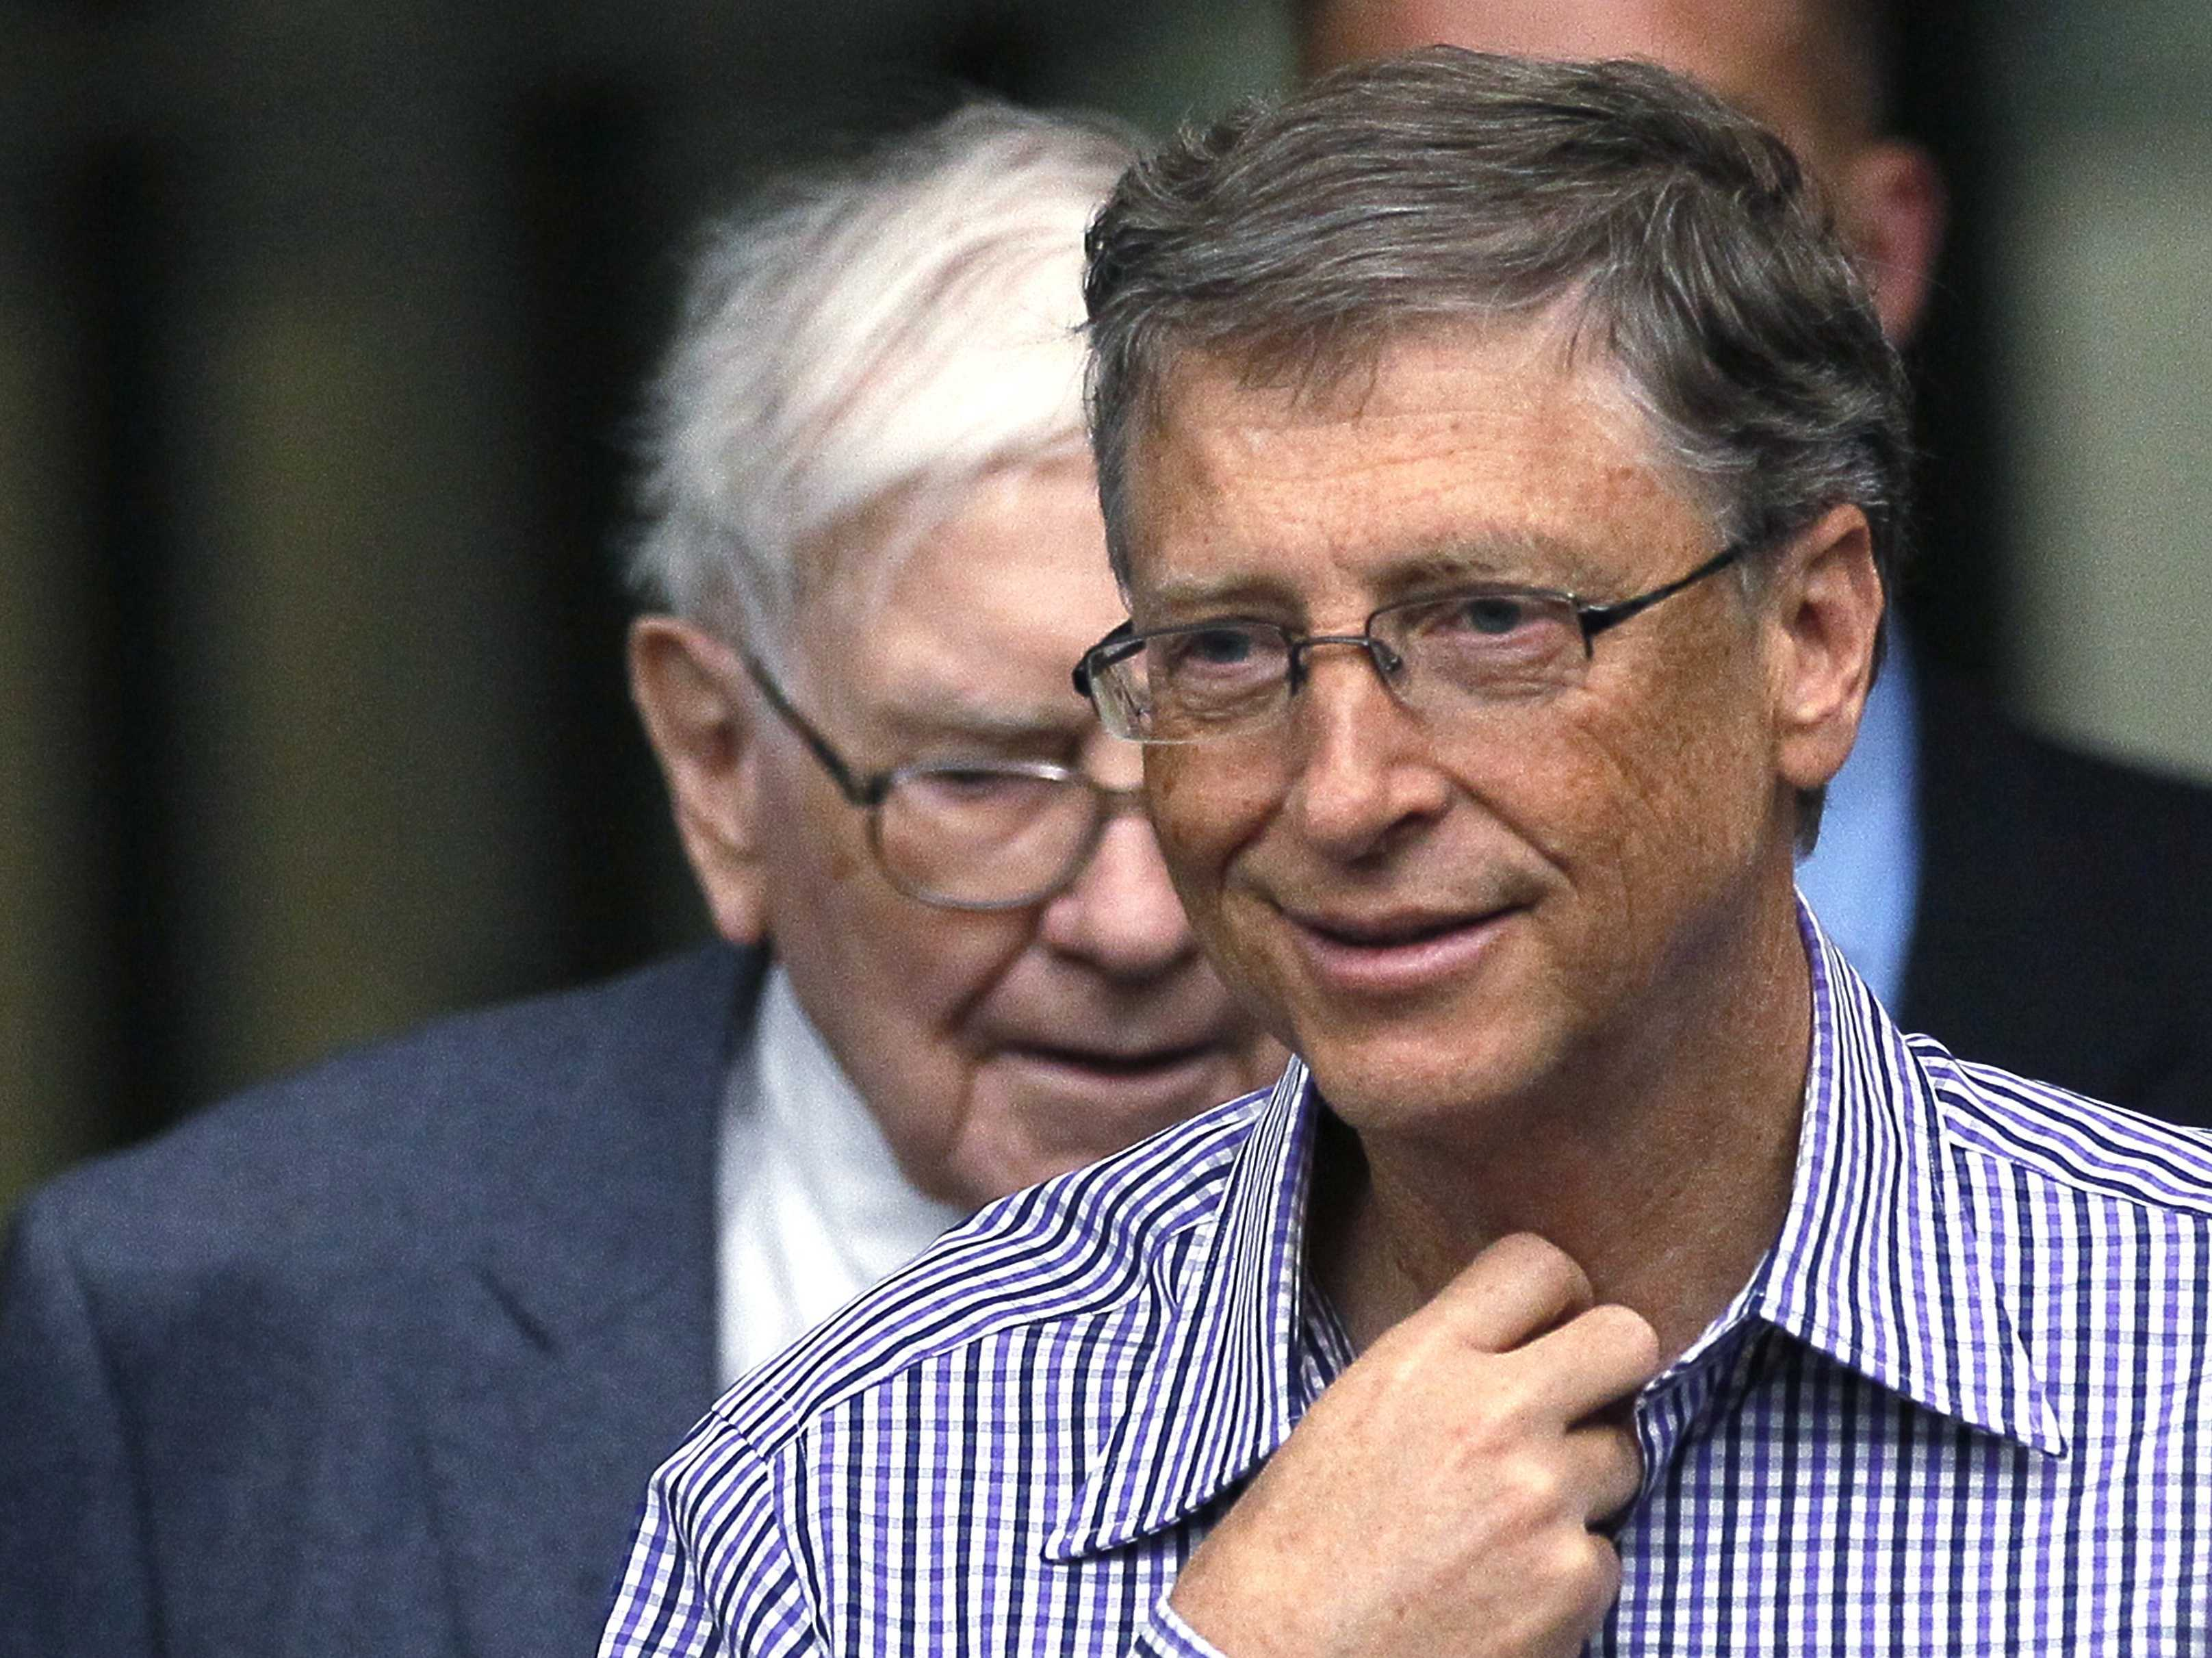 warren-buffett-and-bill-gates